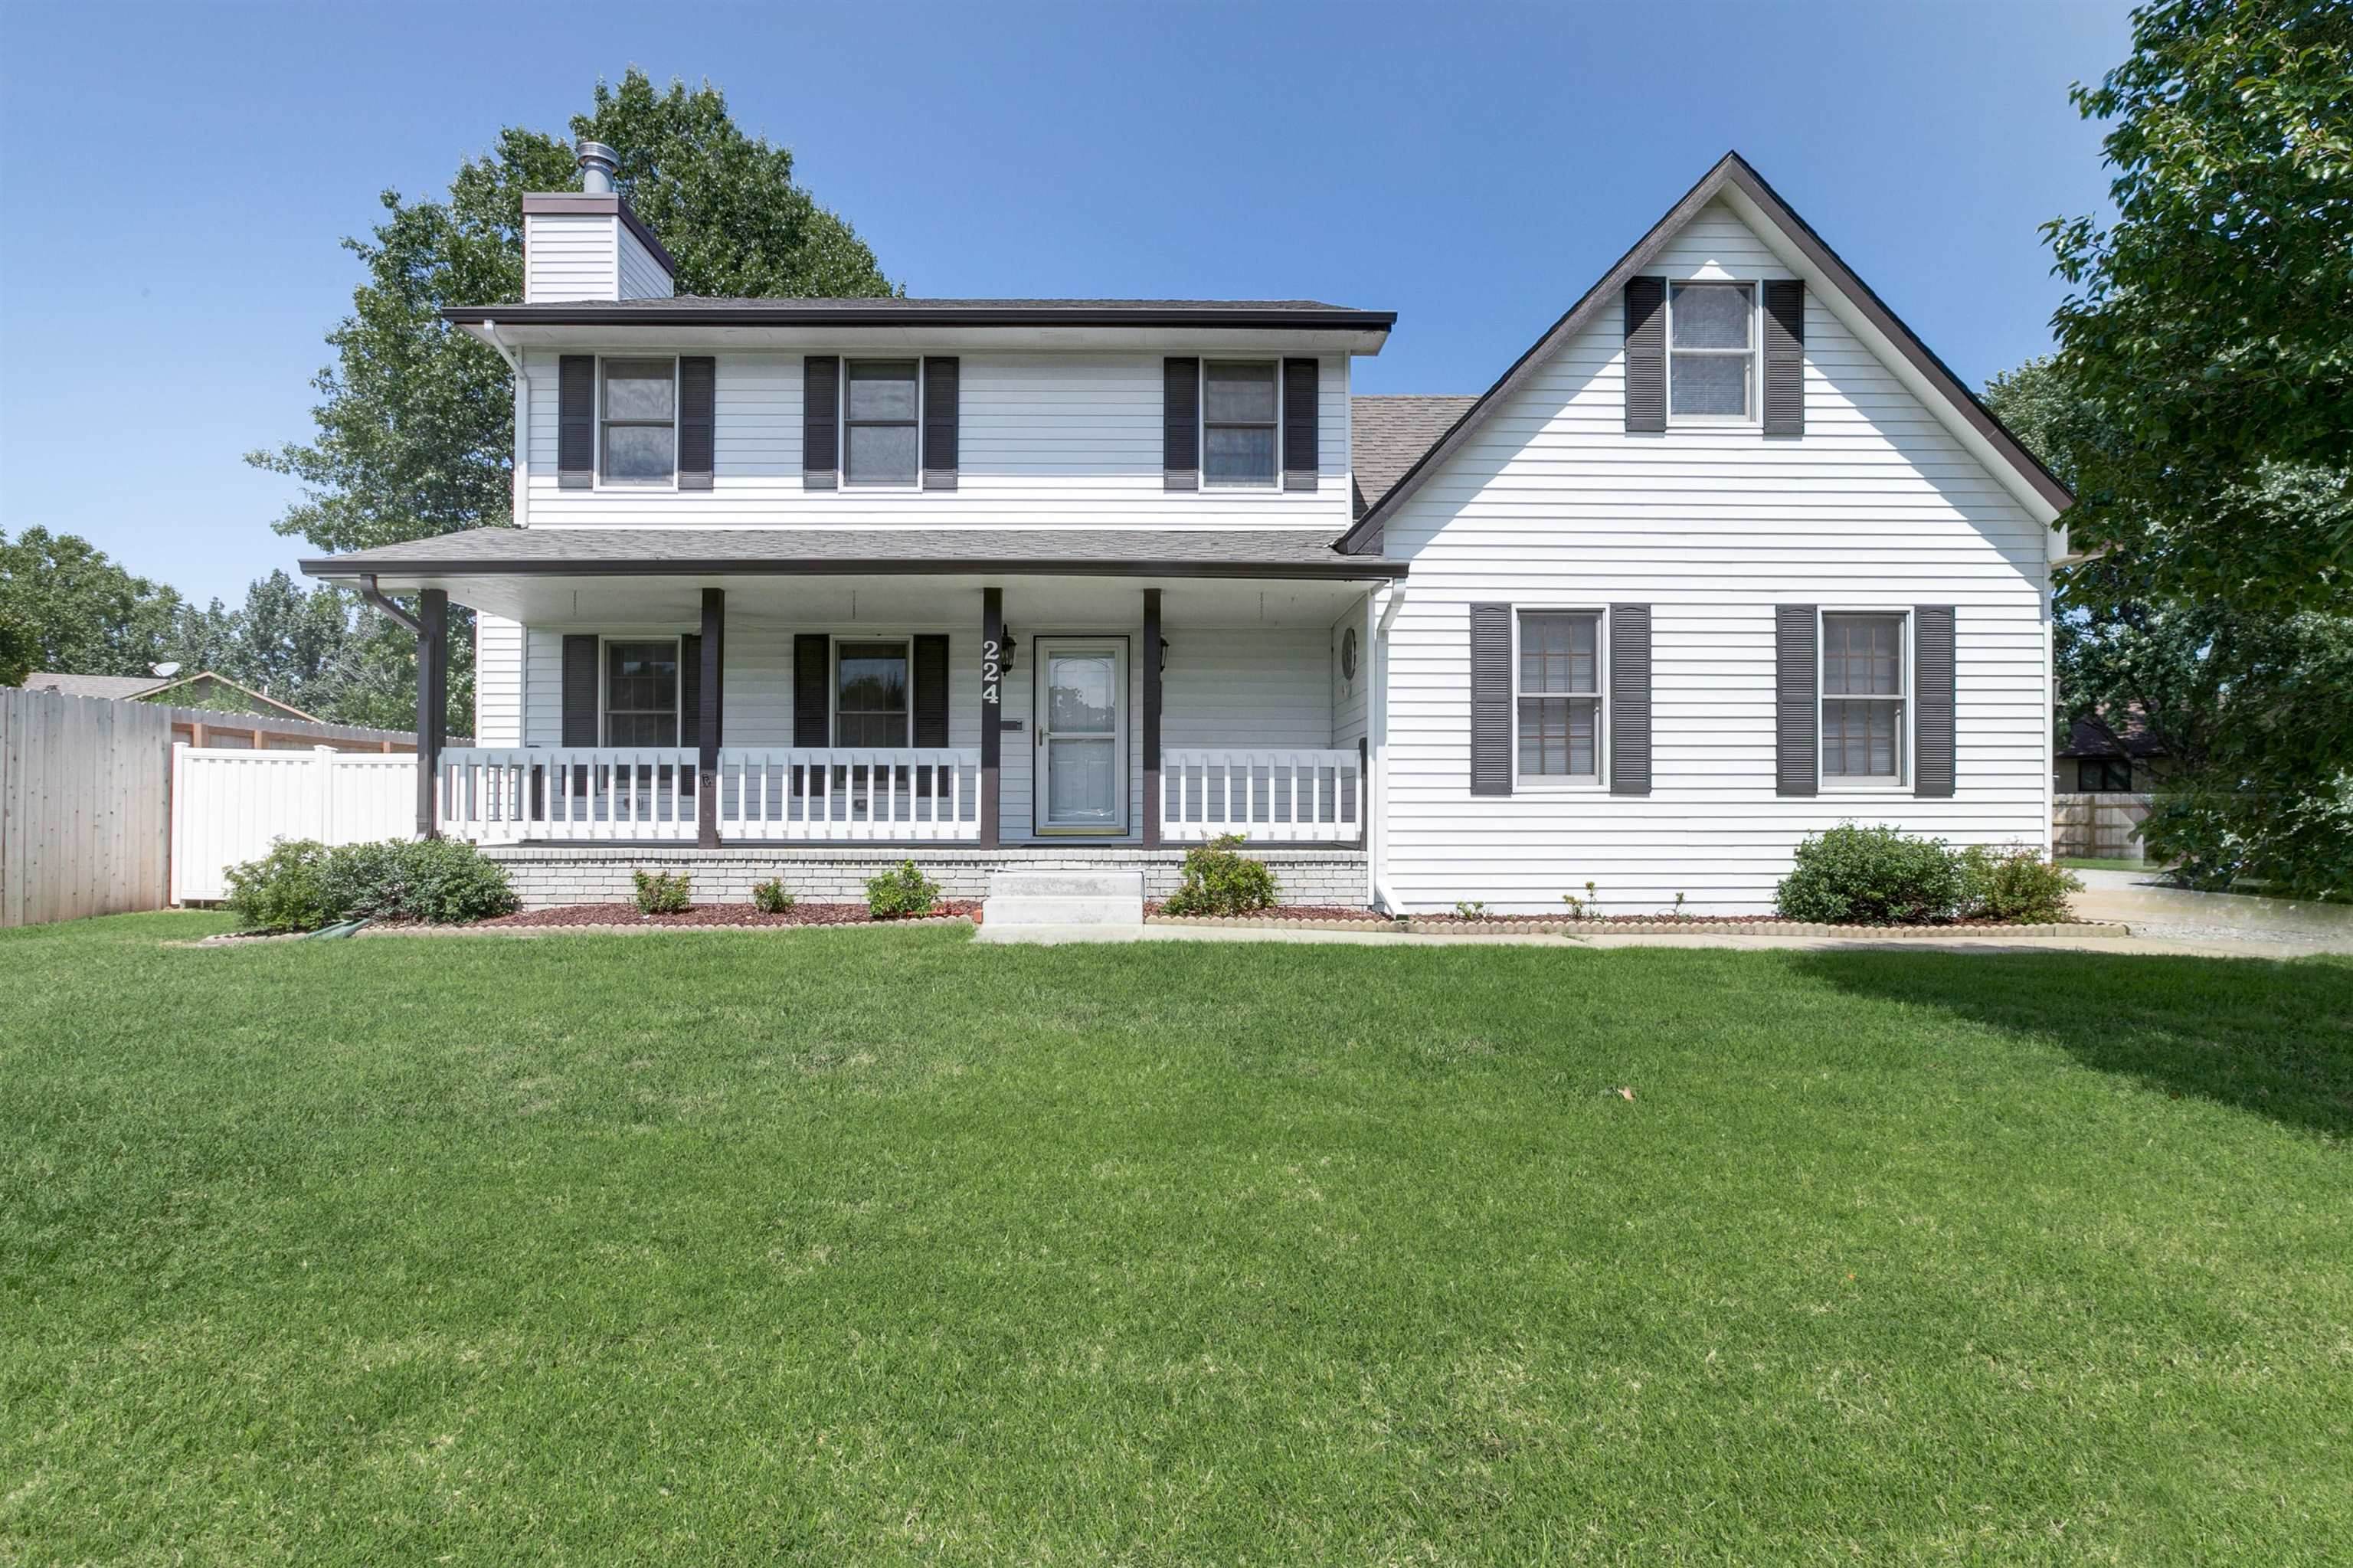 Hurry, Hurry, Hurry and check out this awesome one owner home before it's gone! From the beautiful c